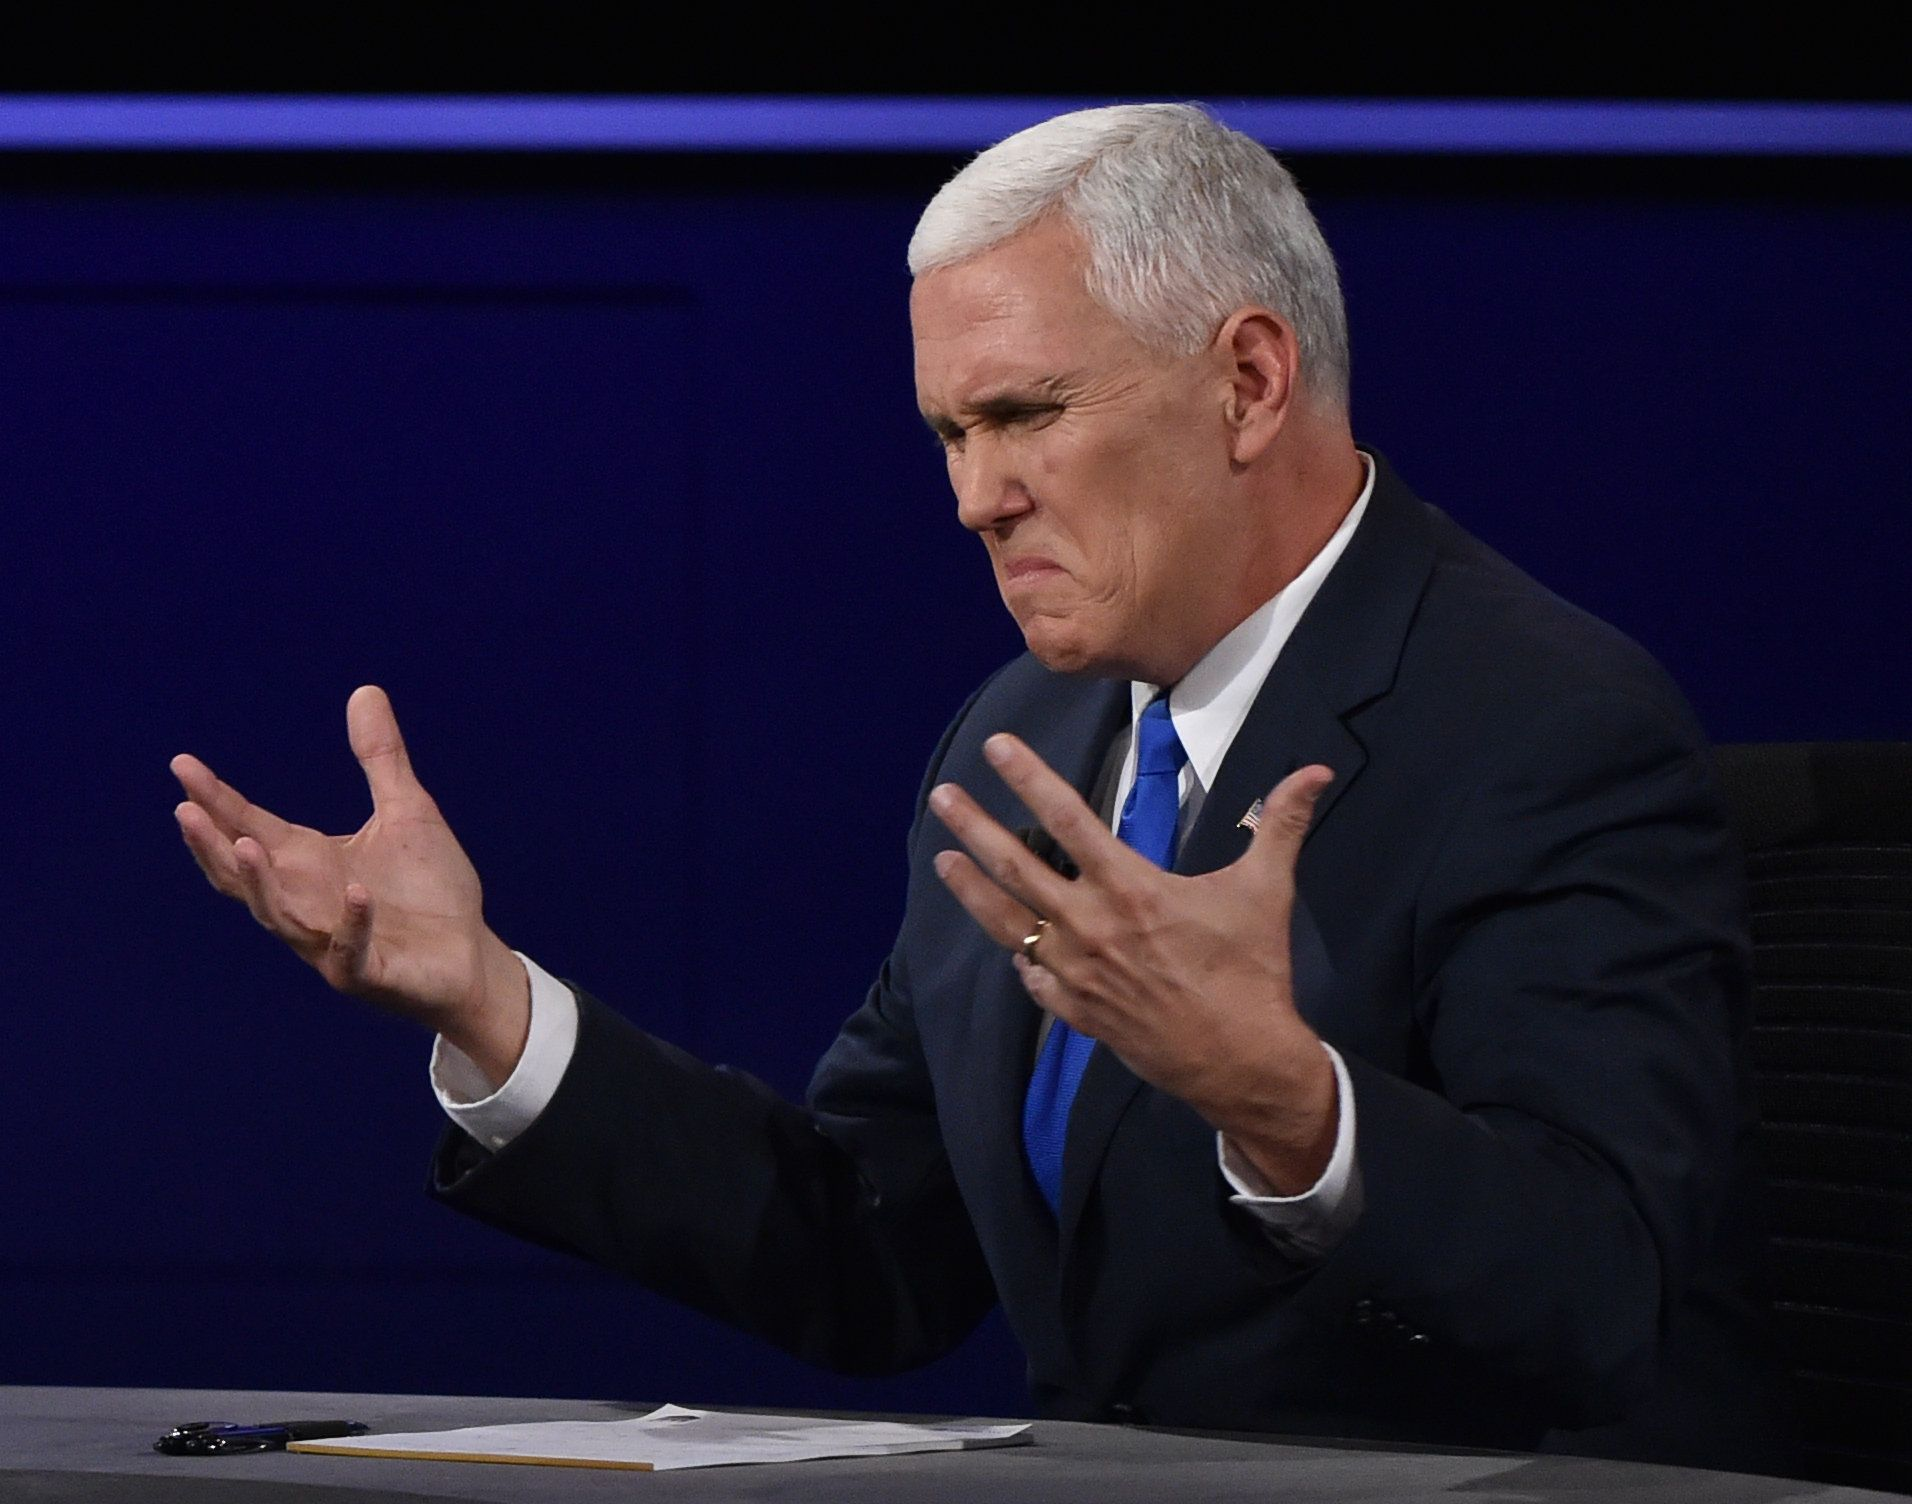 Republican vice presidential candidate Mike Pence participates in the US vice presidential debate at Longwood University in Farmville, Virginia on October 4, 2016.         / AFP / Paul J. Richards        (Photo credit should read PAUL J. RICHARDS/AFP/Getty Images)